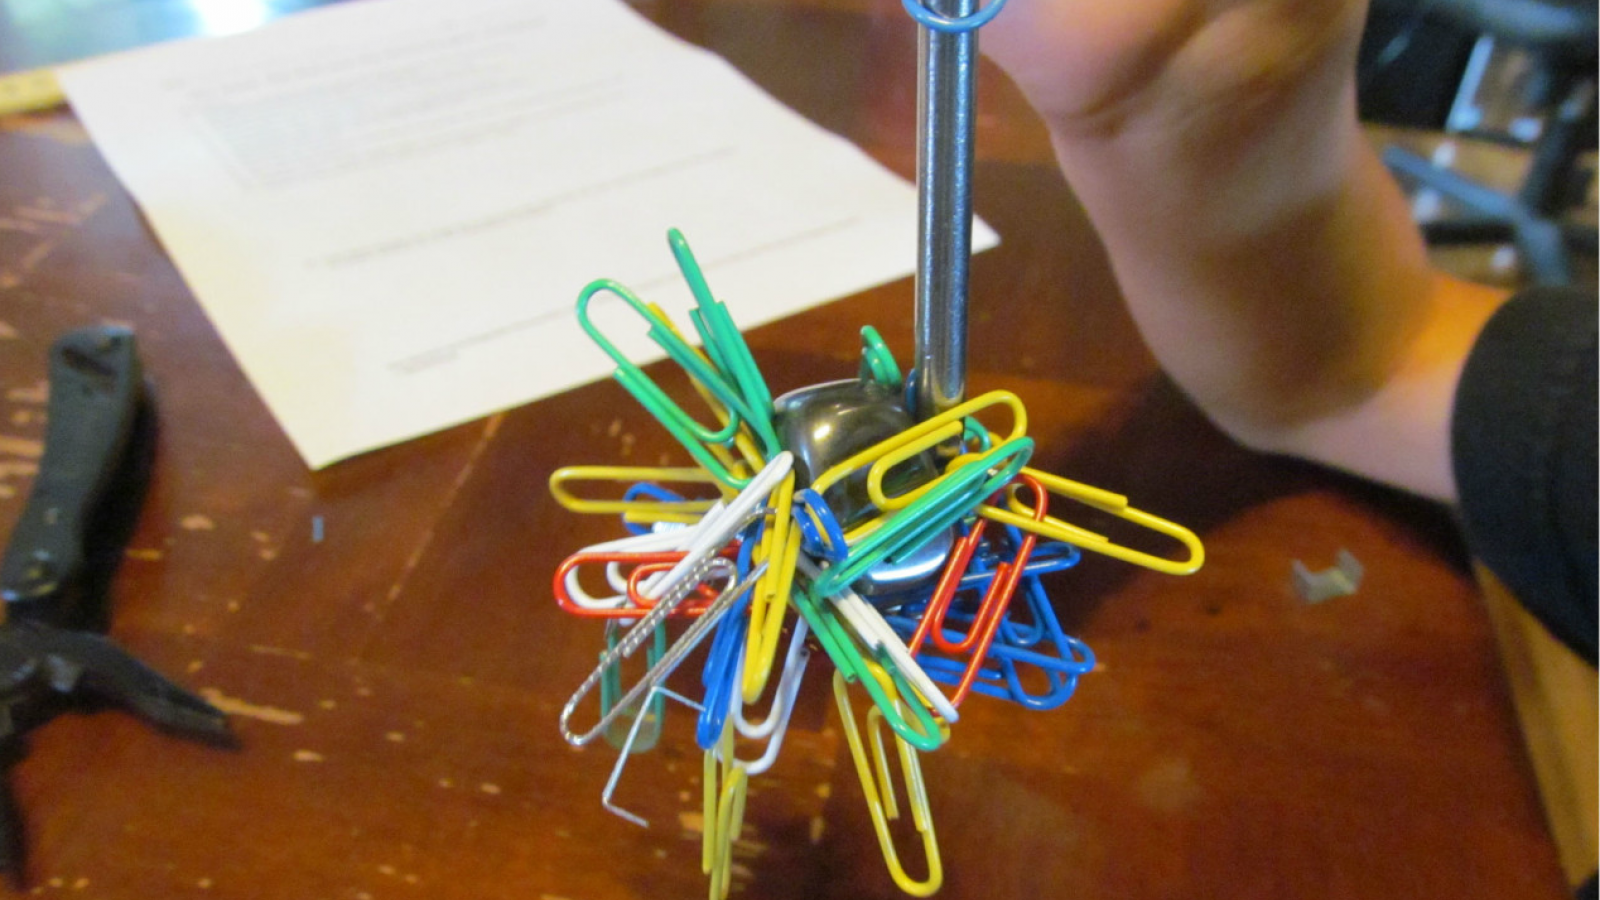 Electromagnet holding paperclips